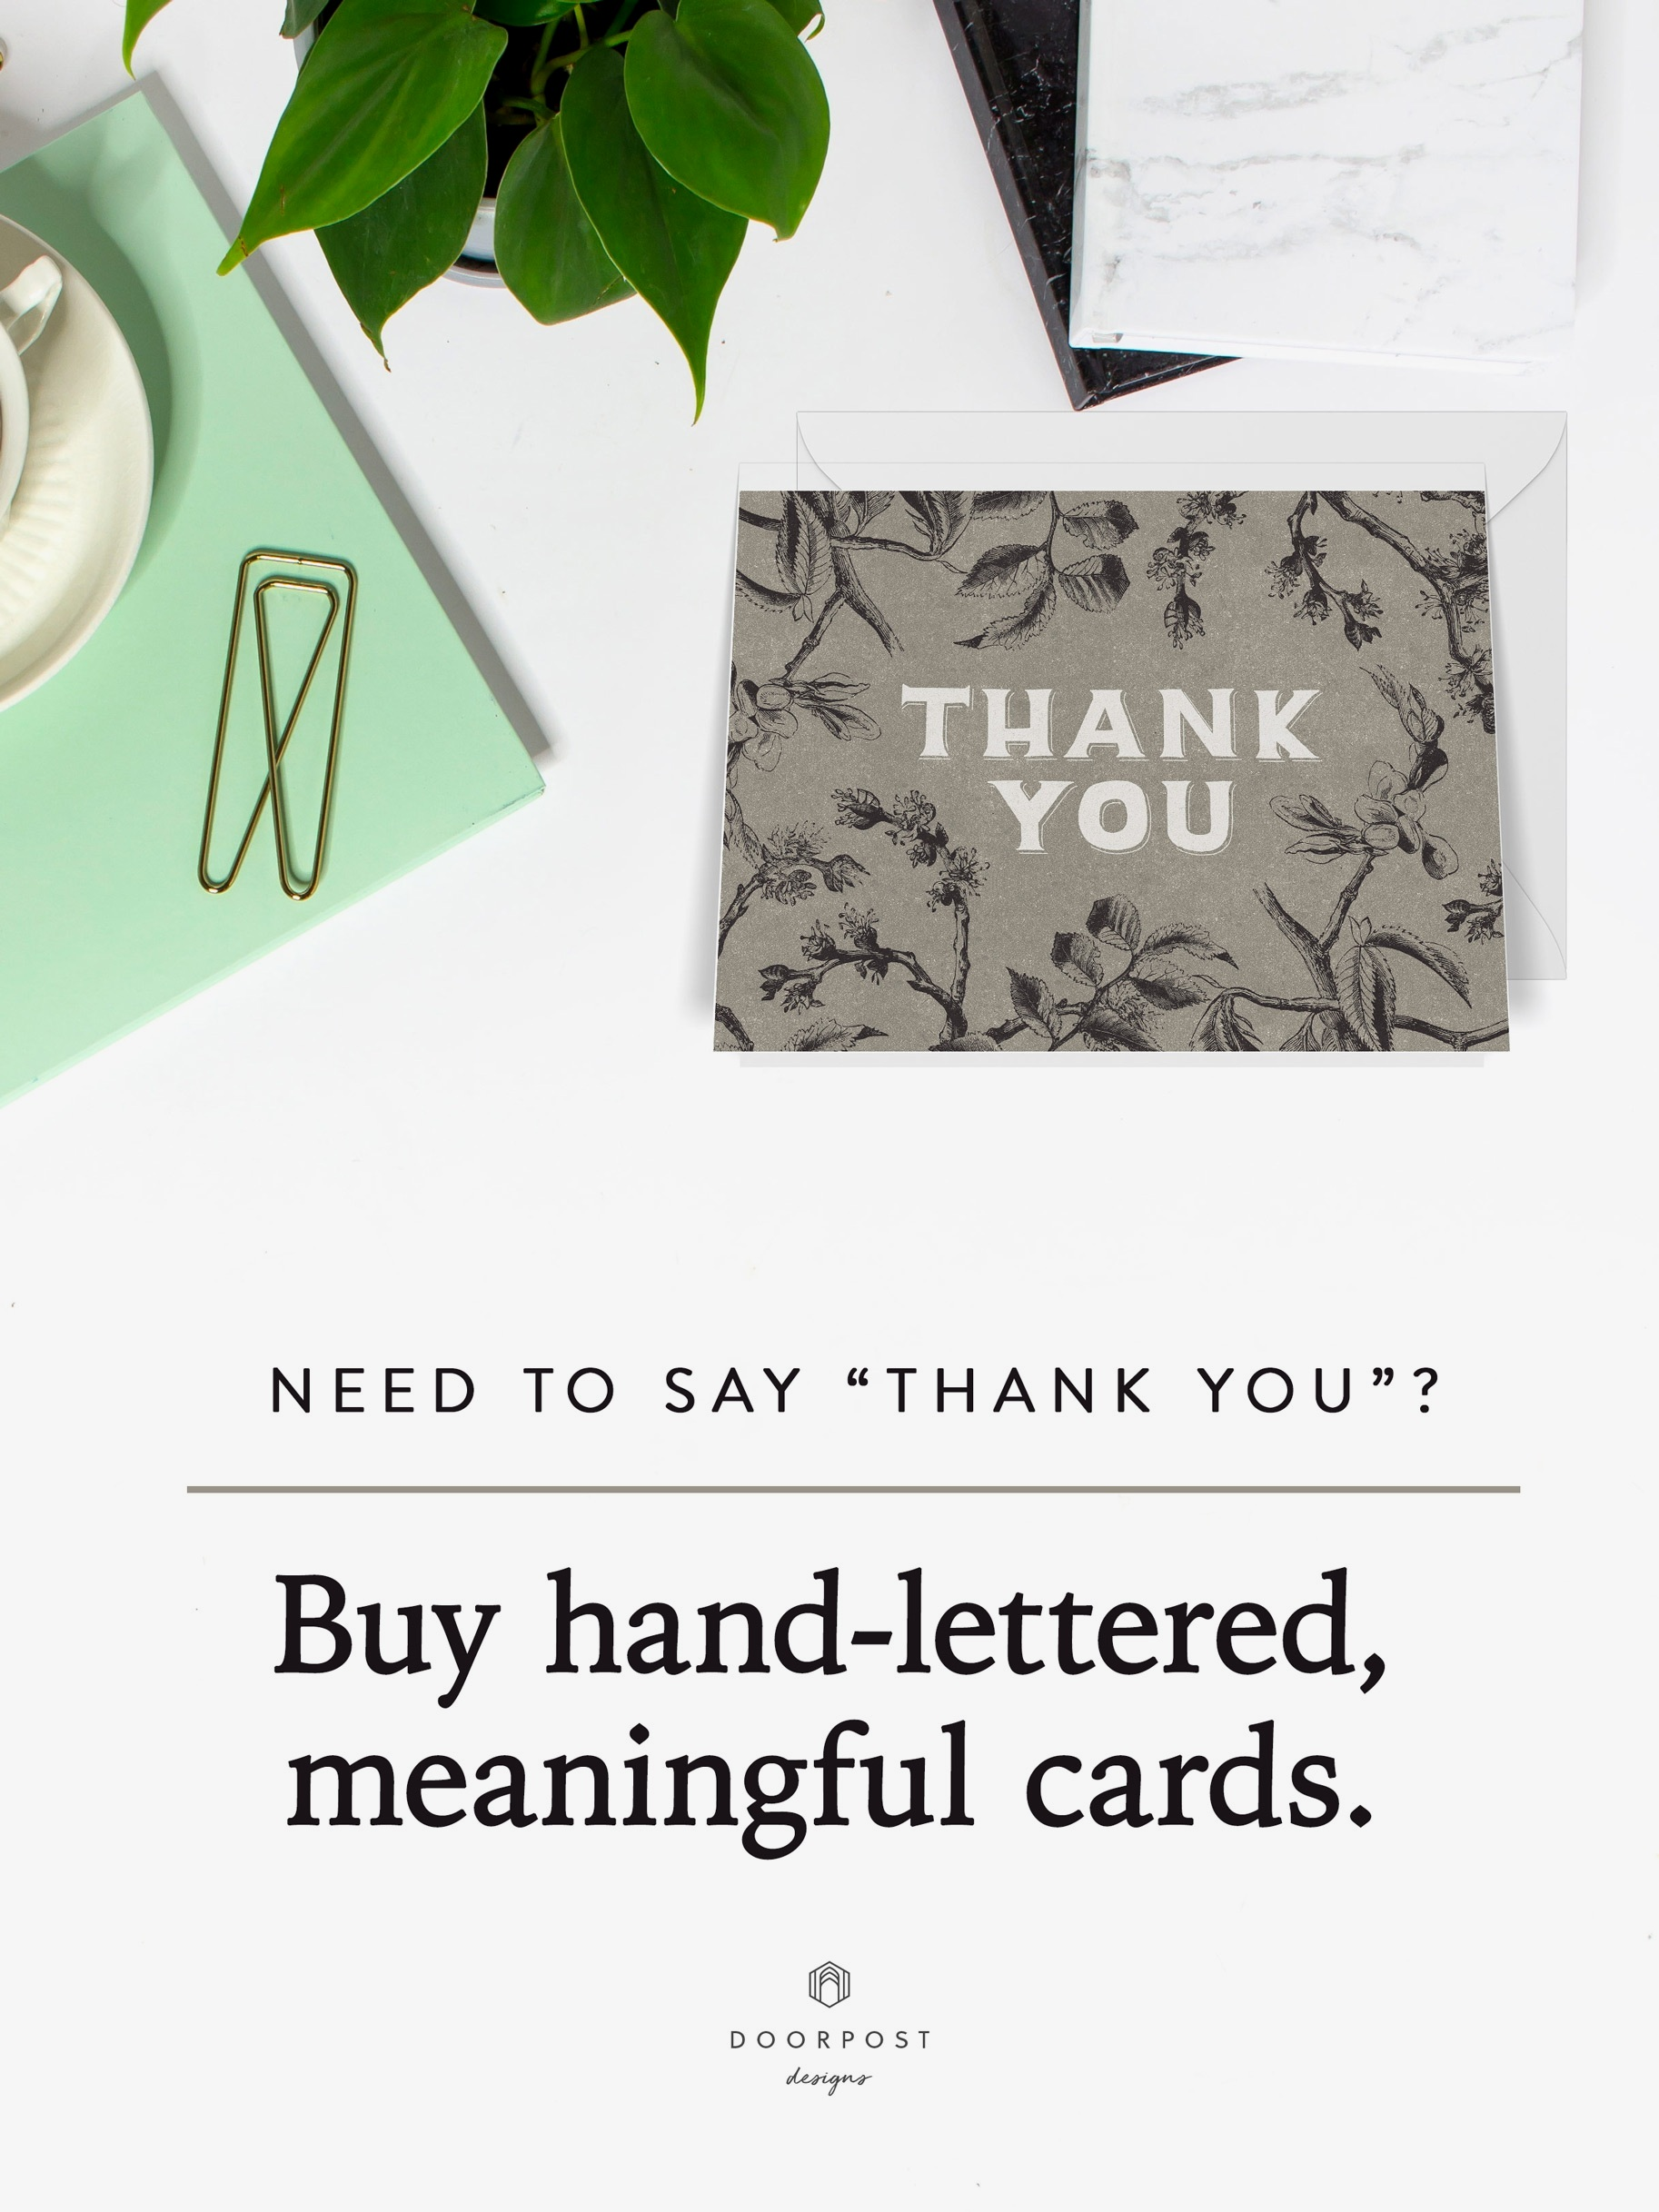 Buy hand-lettered, meaningful cards